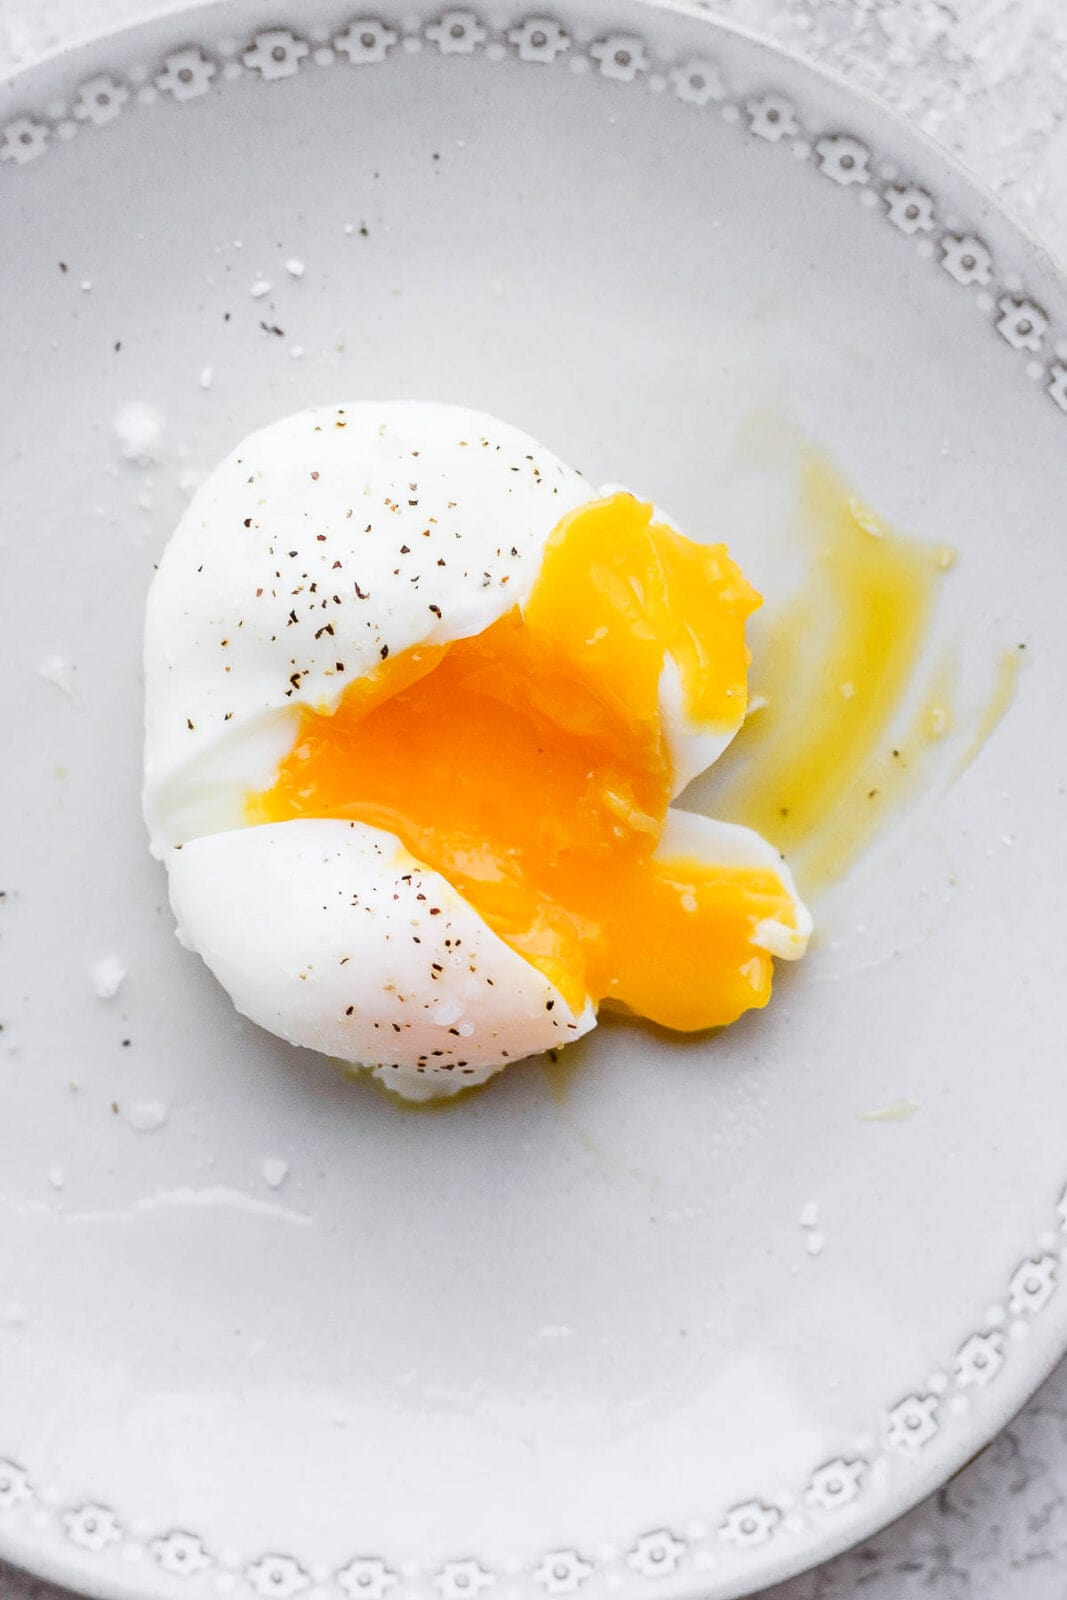 Poached egg on a plate.